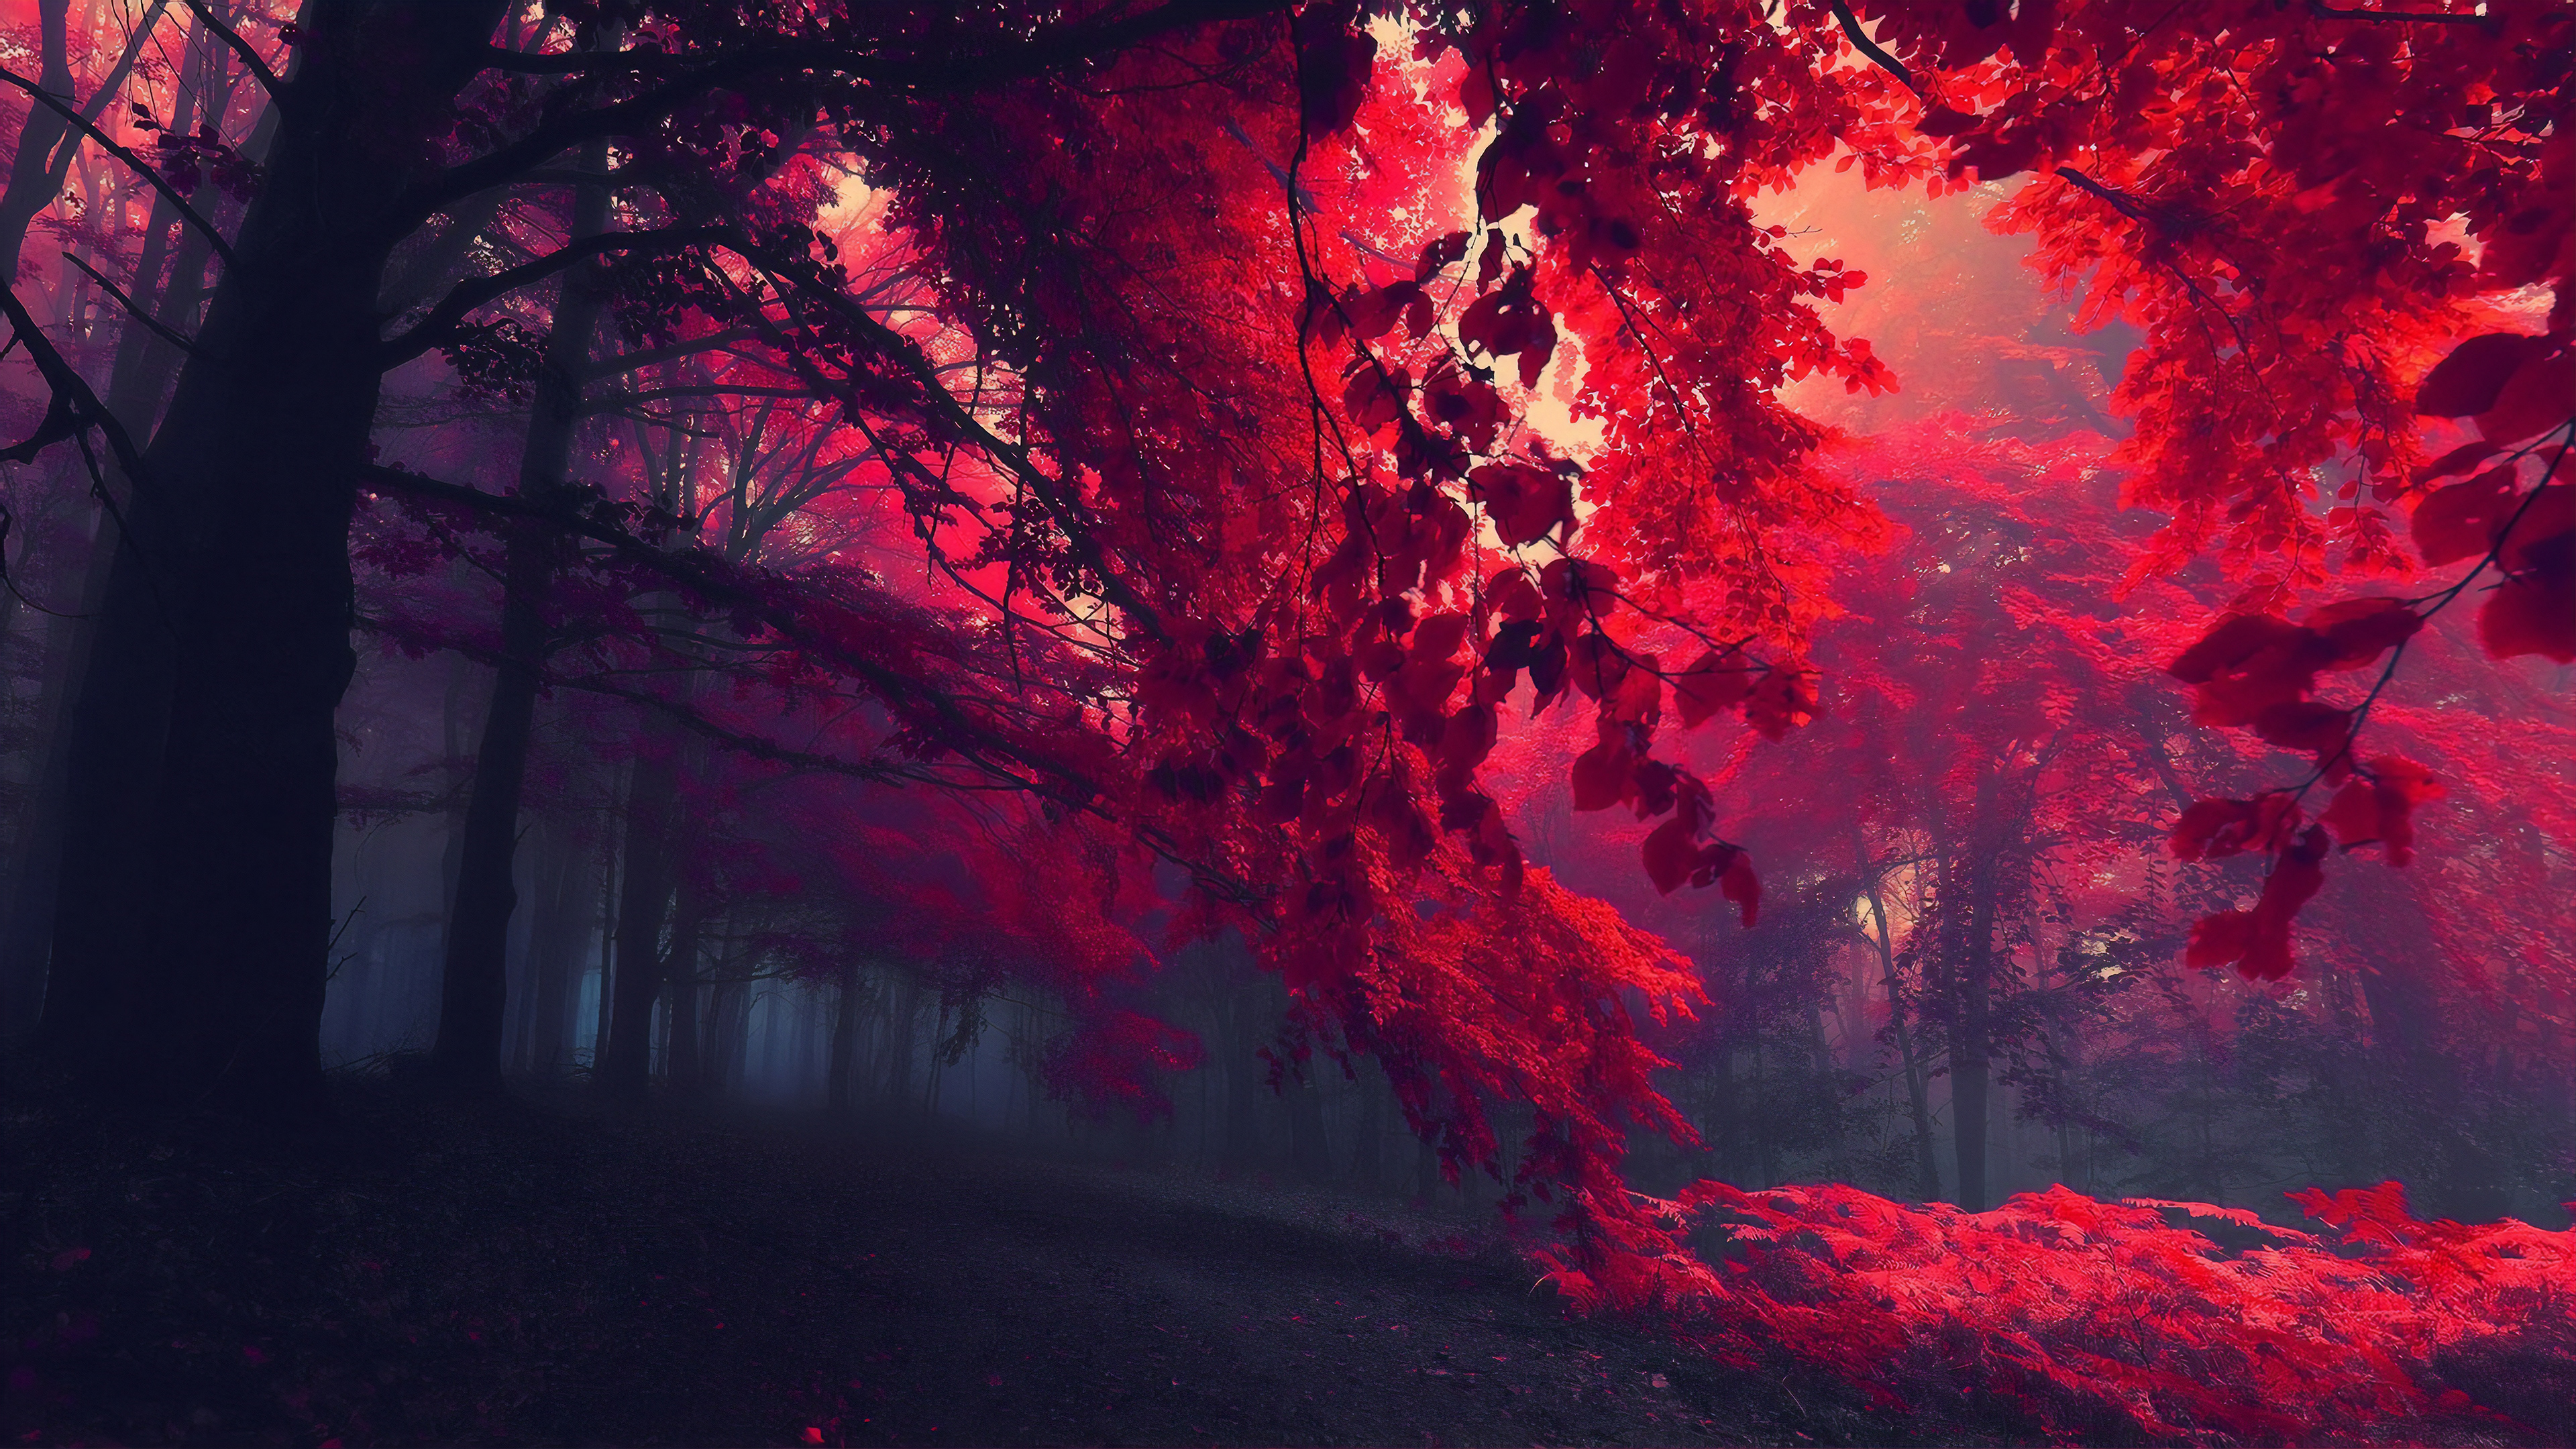 Dark Red Autumn Forest Hd Nature 4k Wallpapers Images